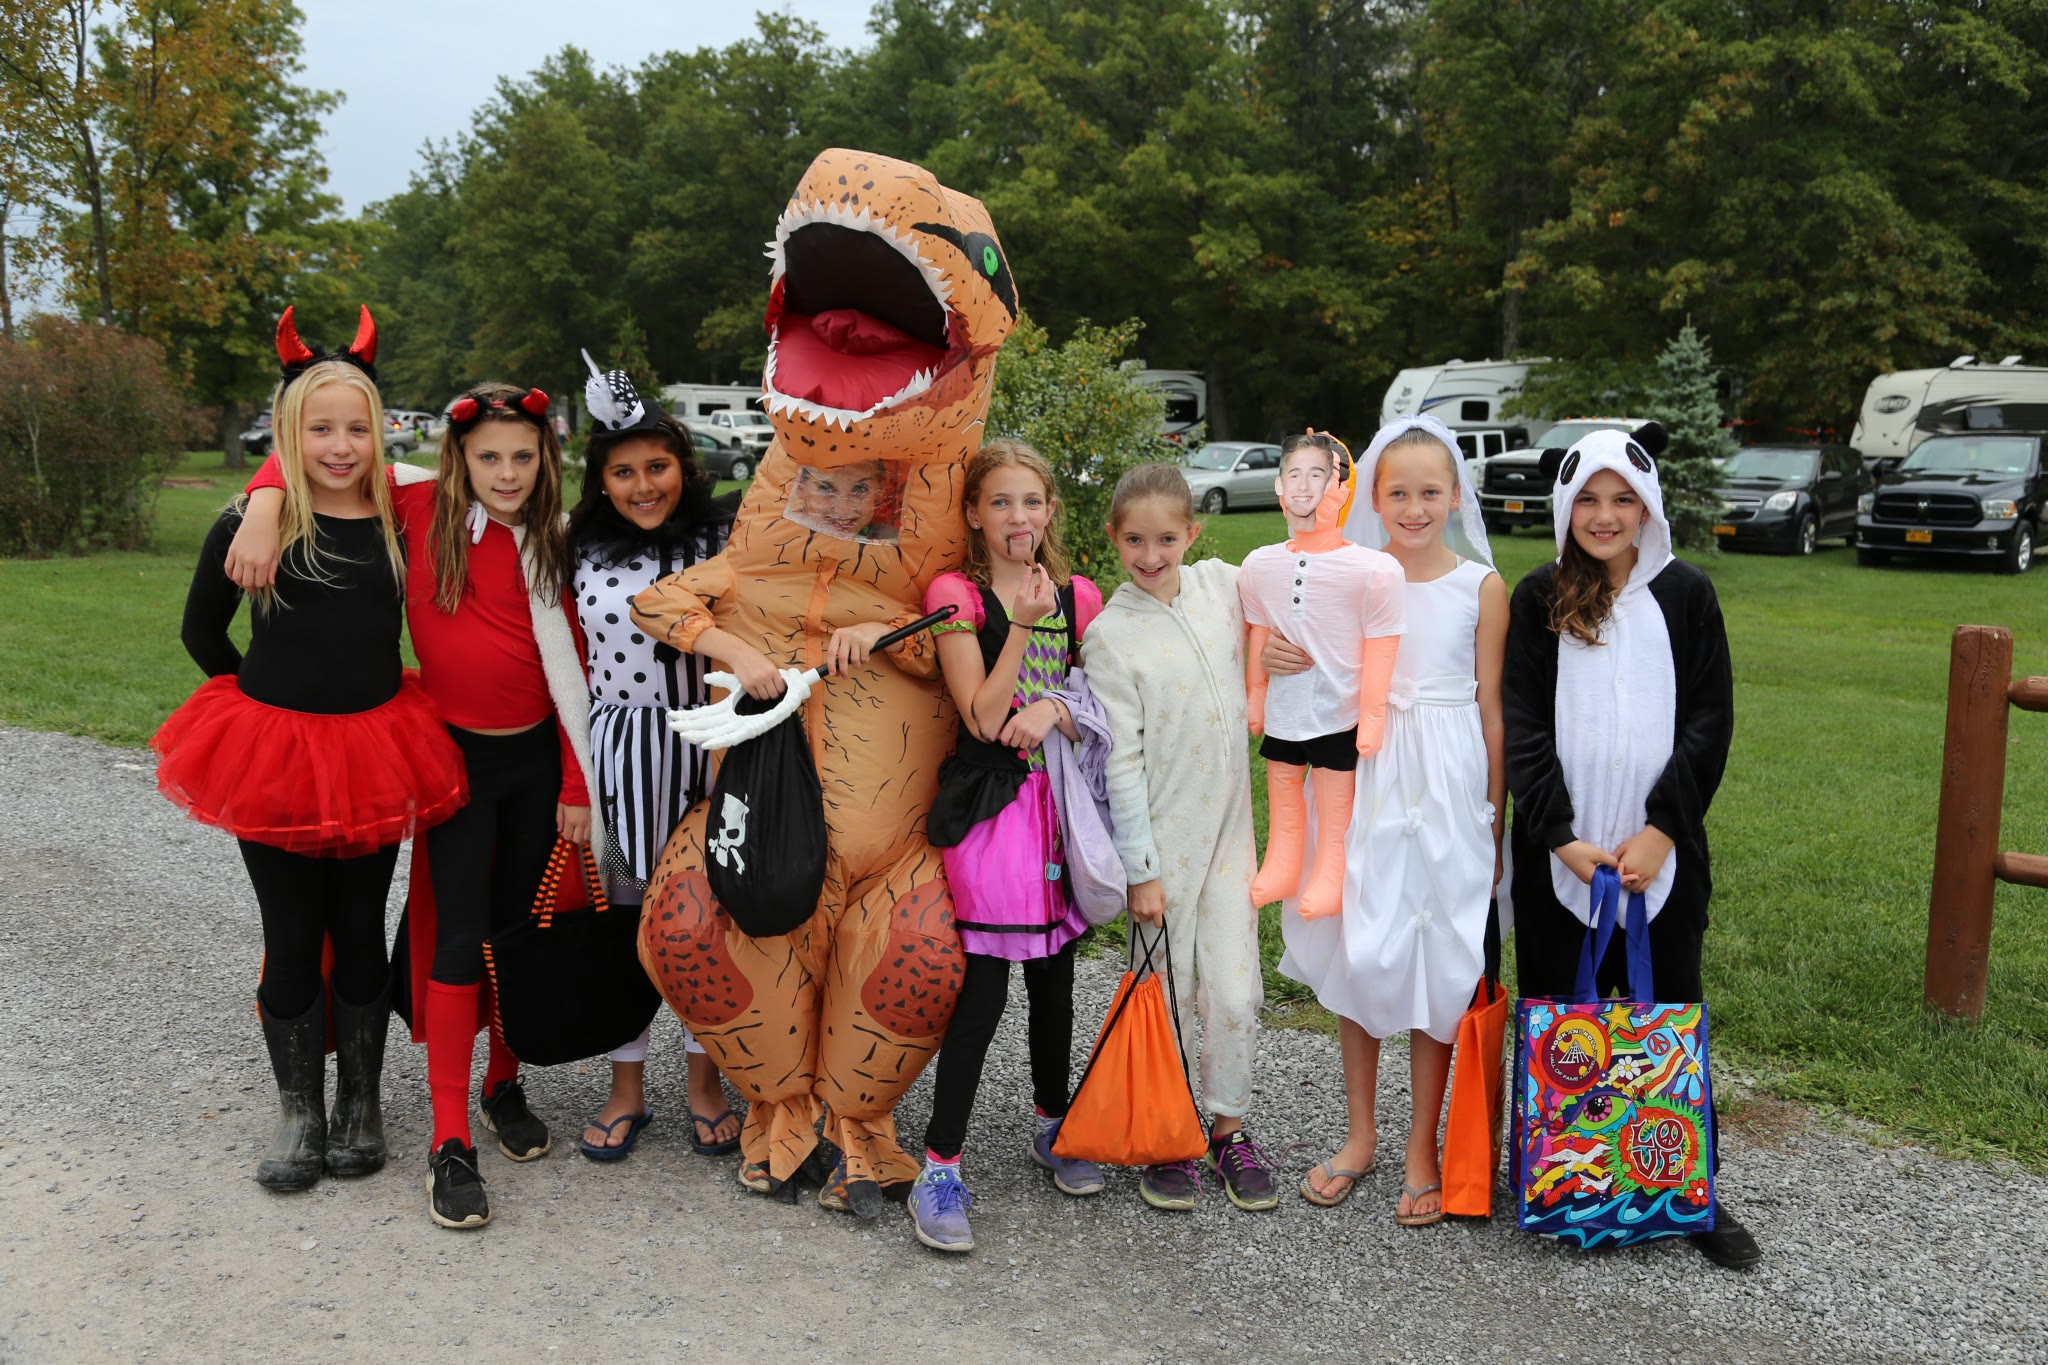 little girls trick-or-treating in various costumes